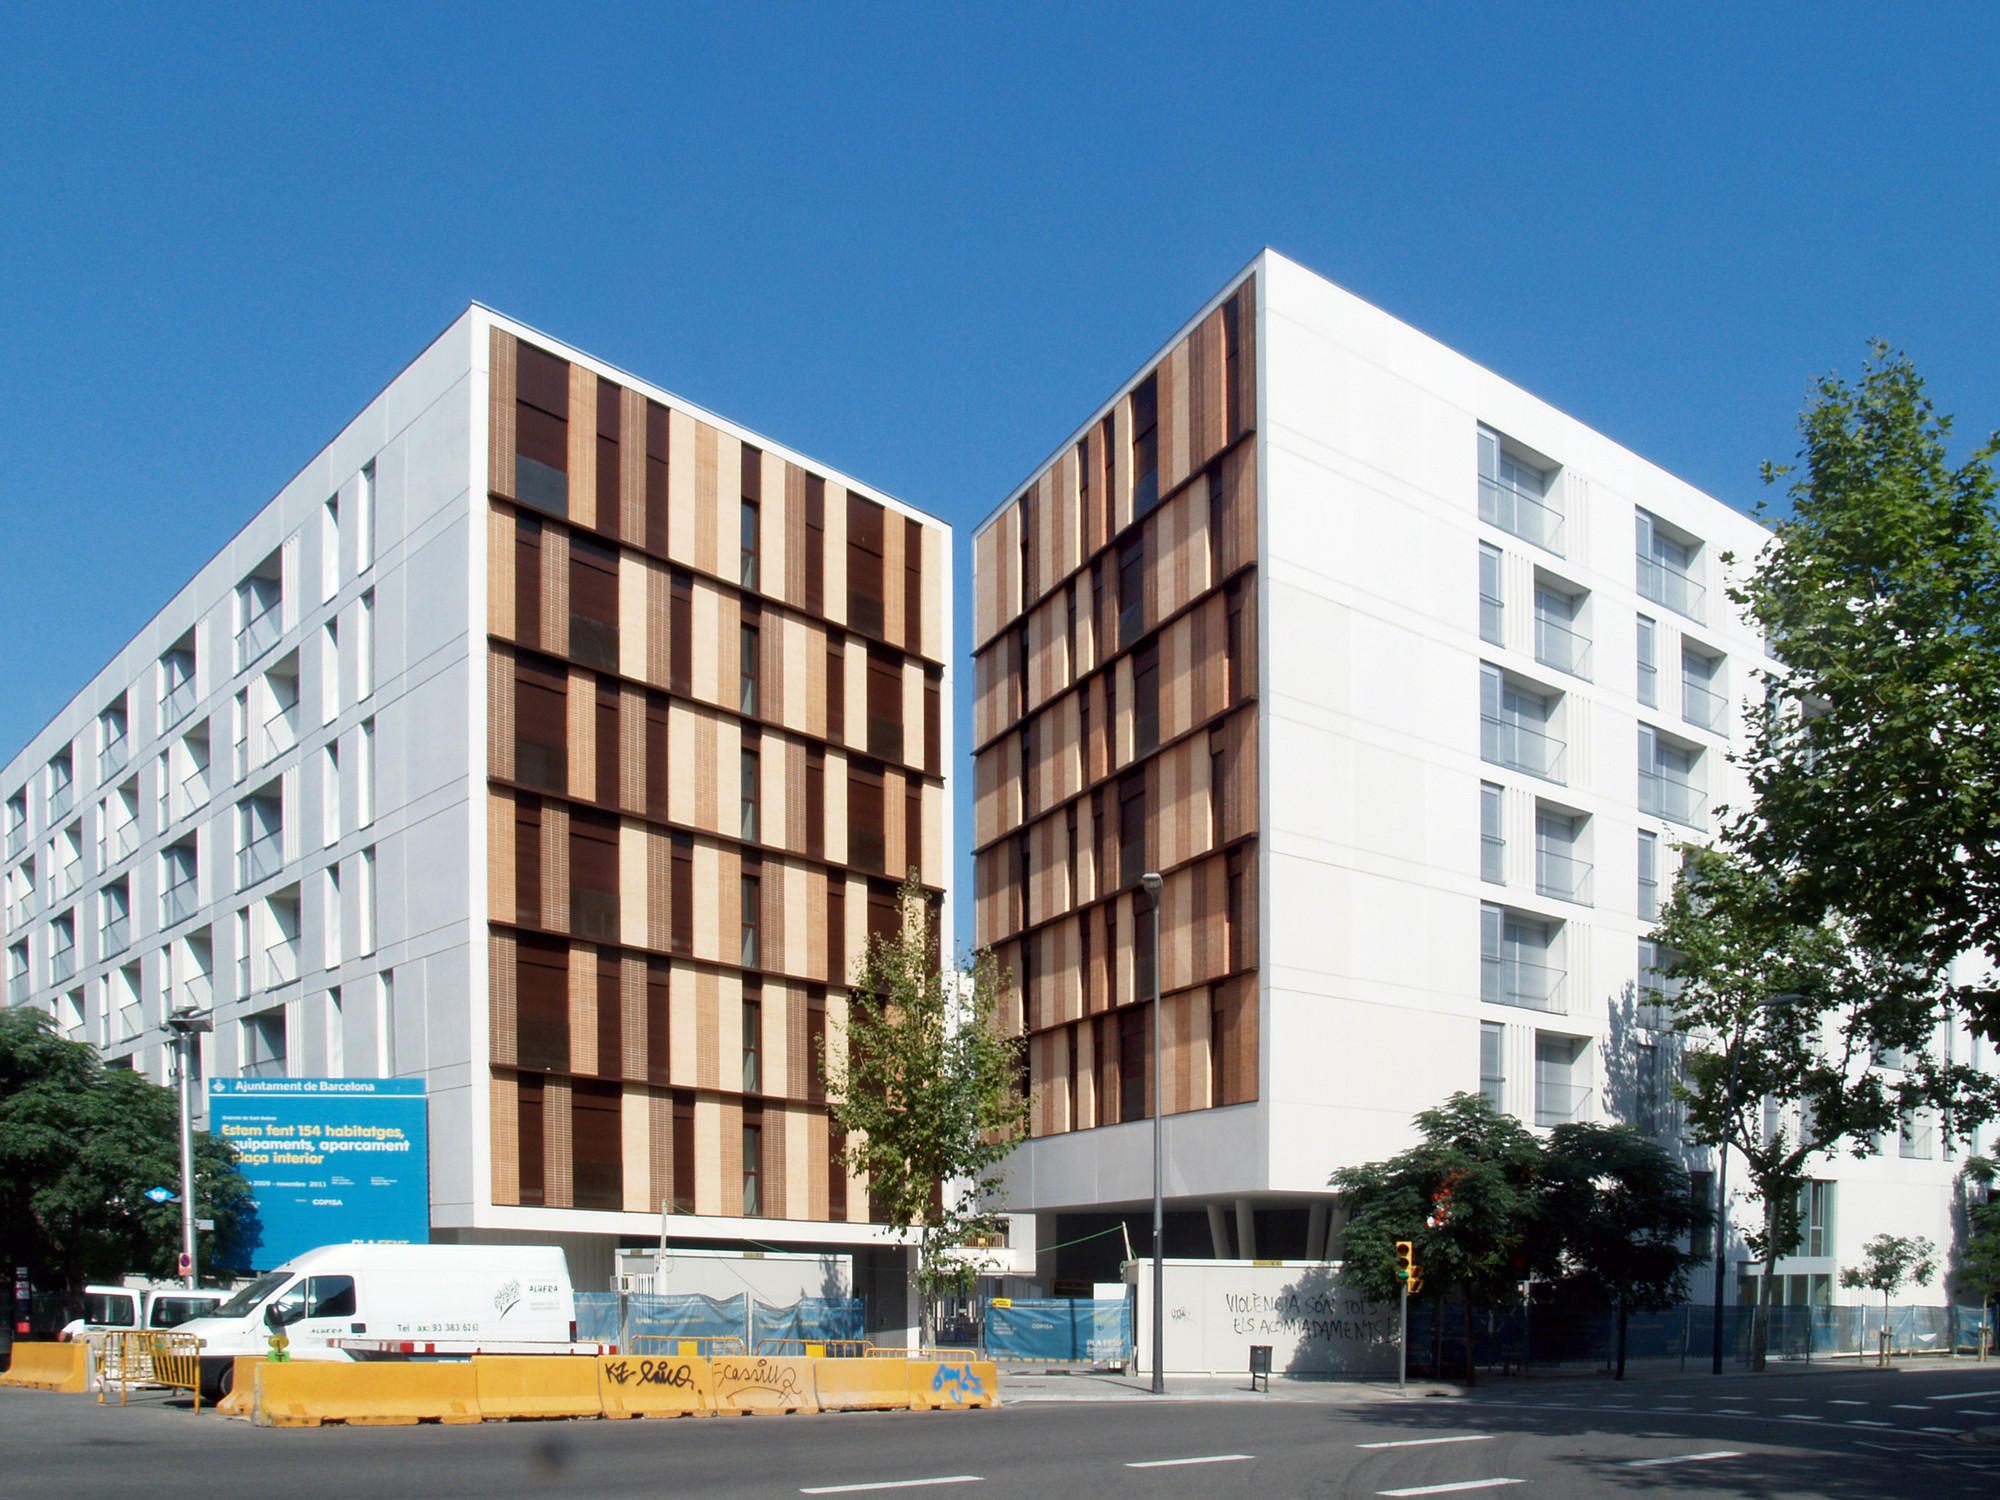 154 Rental Social Housing And Public Building For The Barcelona Municipal Housing / ONL Arquitectura, © Gianluca Giaccone